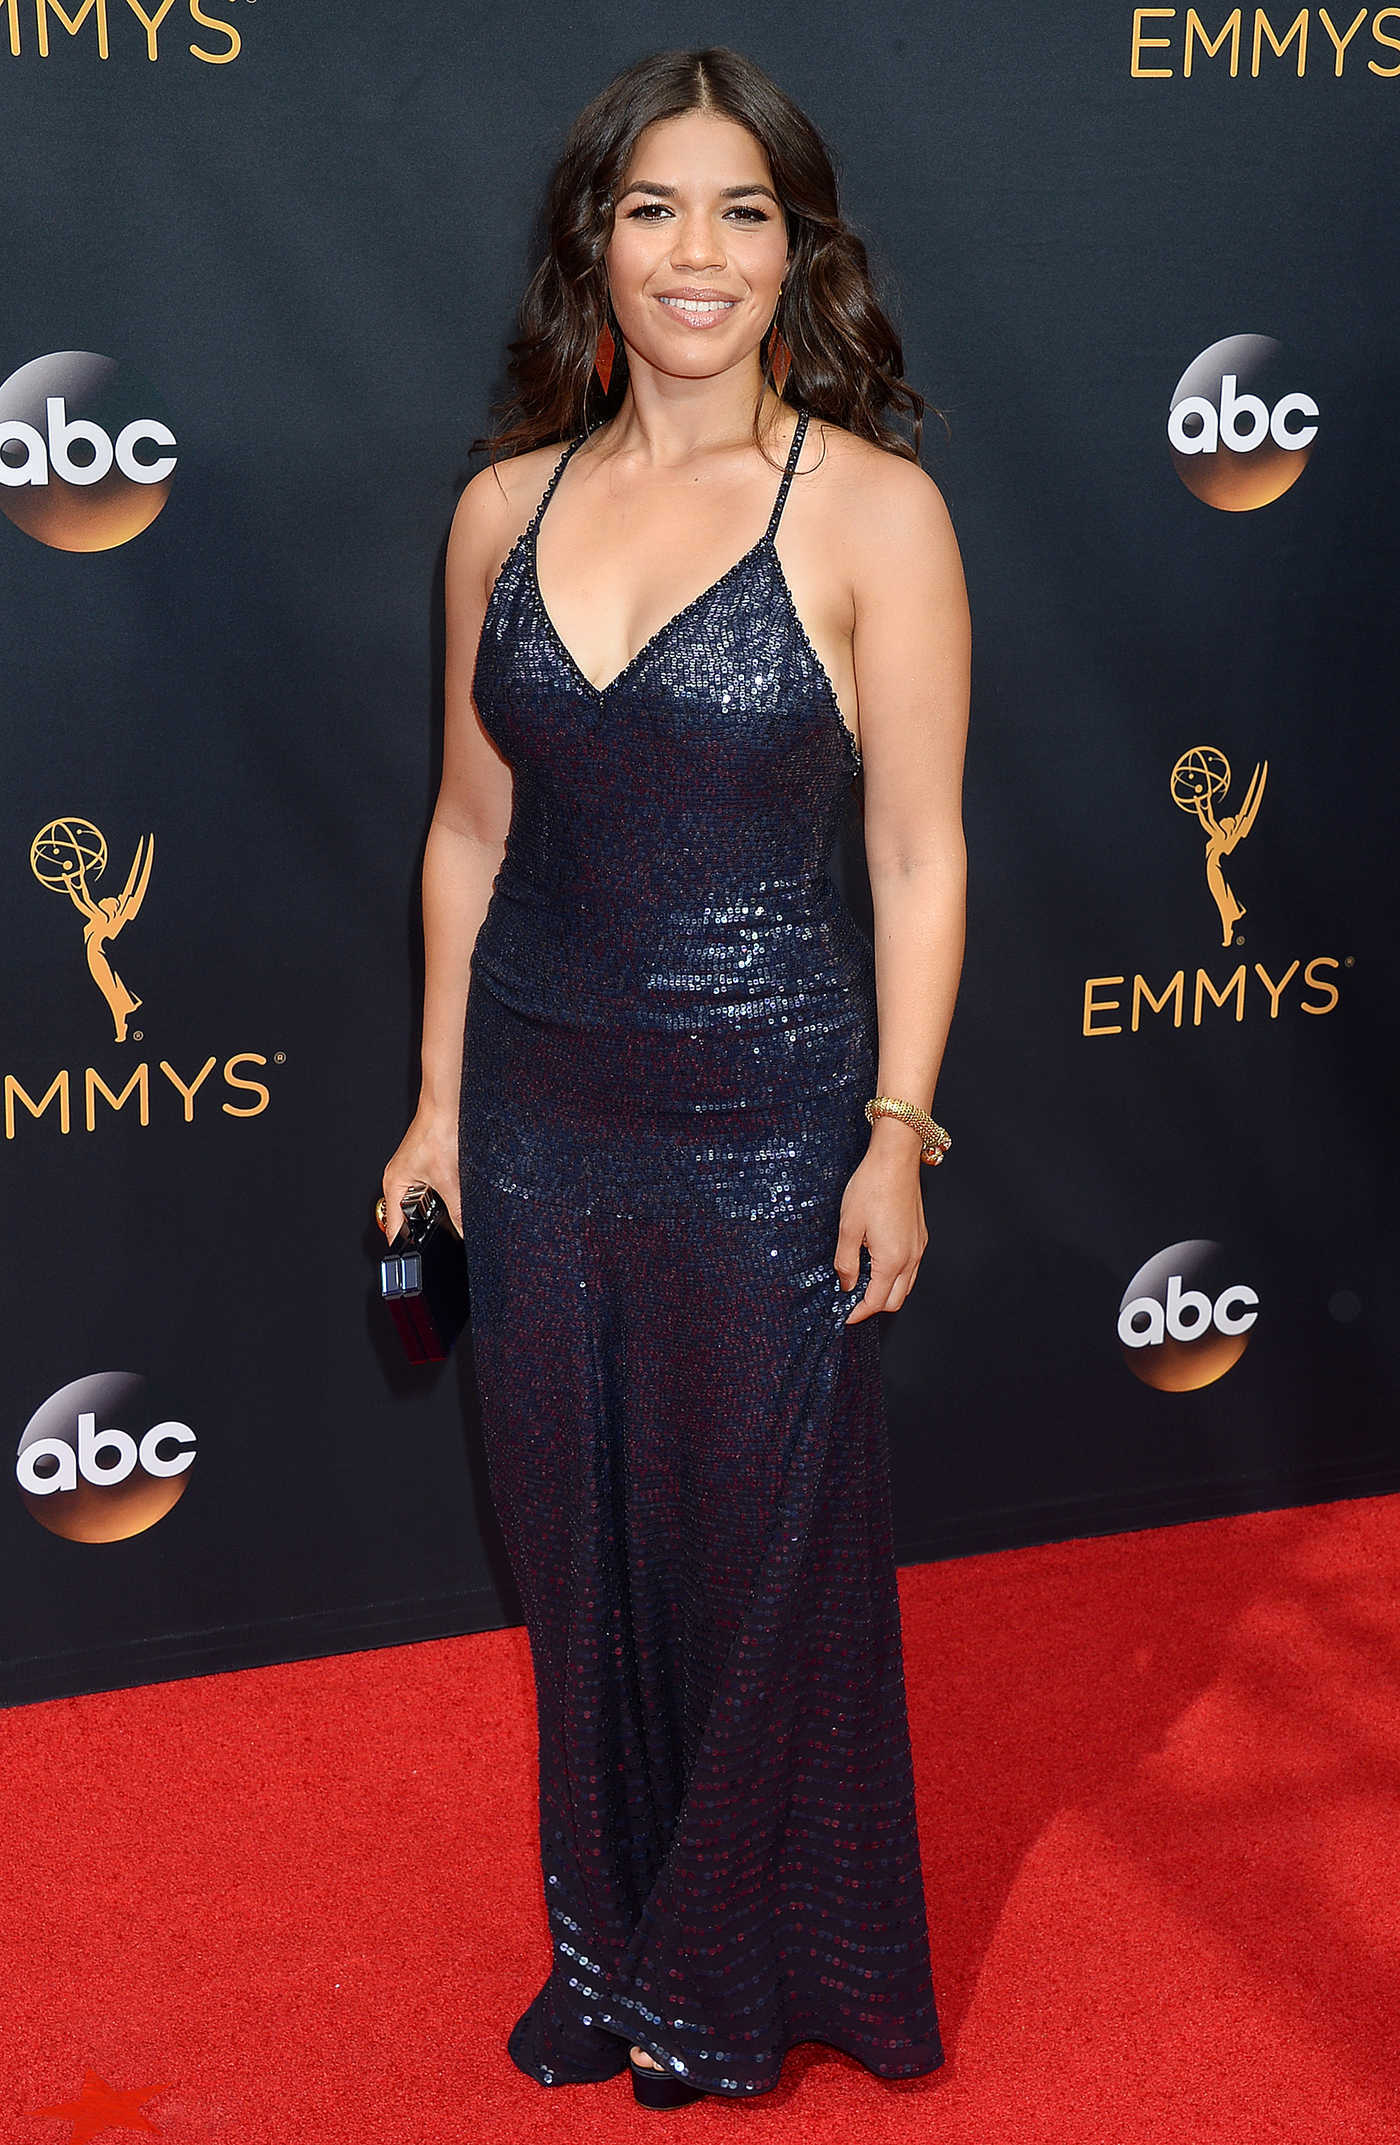 America Ferrera at the 68th Emmy Awards in Los Angeles 09/18/2016